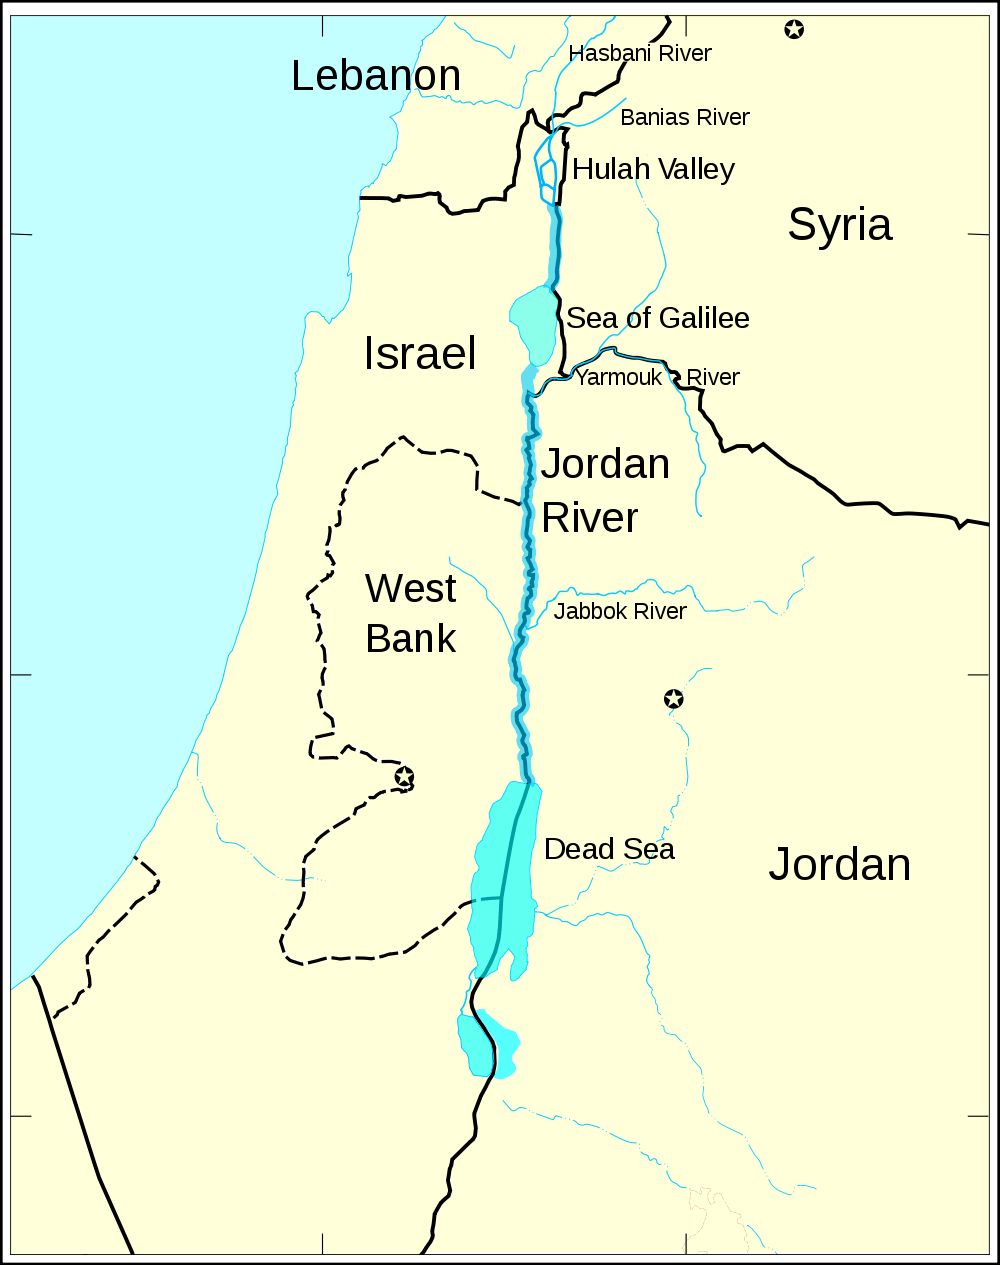 Hover to zoom map. Click on the Jordan River Map to view it full